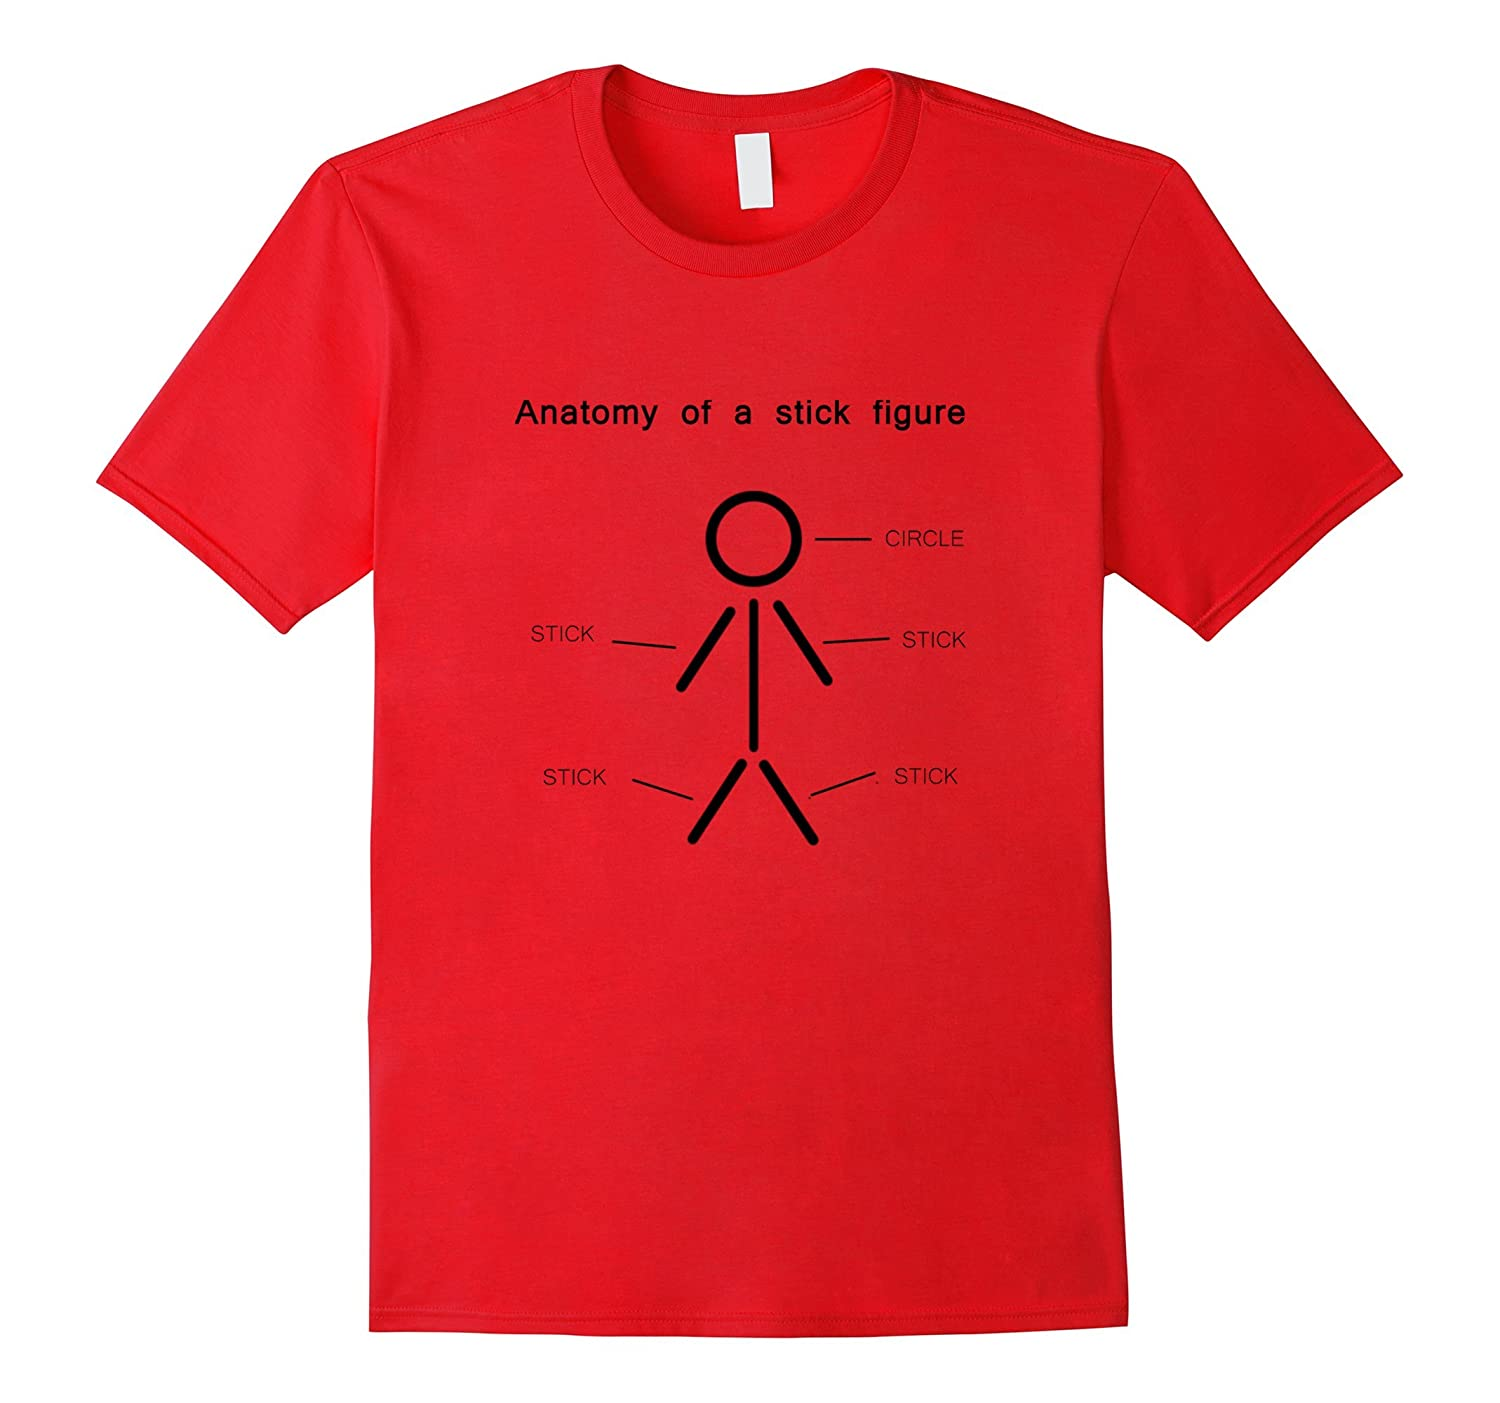 Stick Figure Anatomy Funny T-Shirt Scientific Parody – Hntee.com